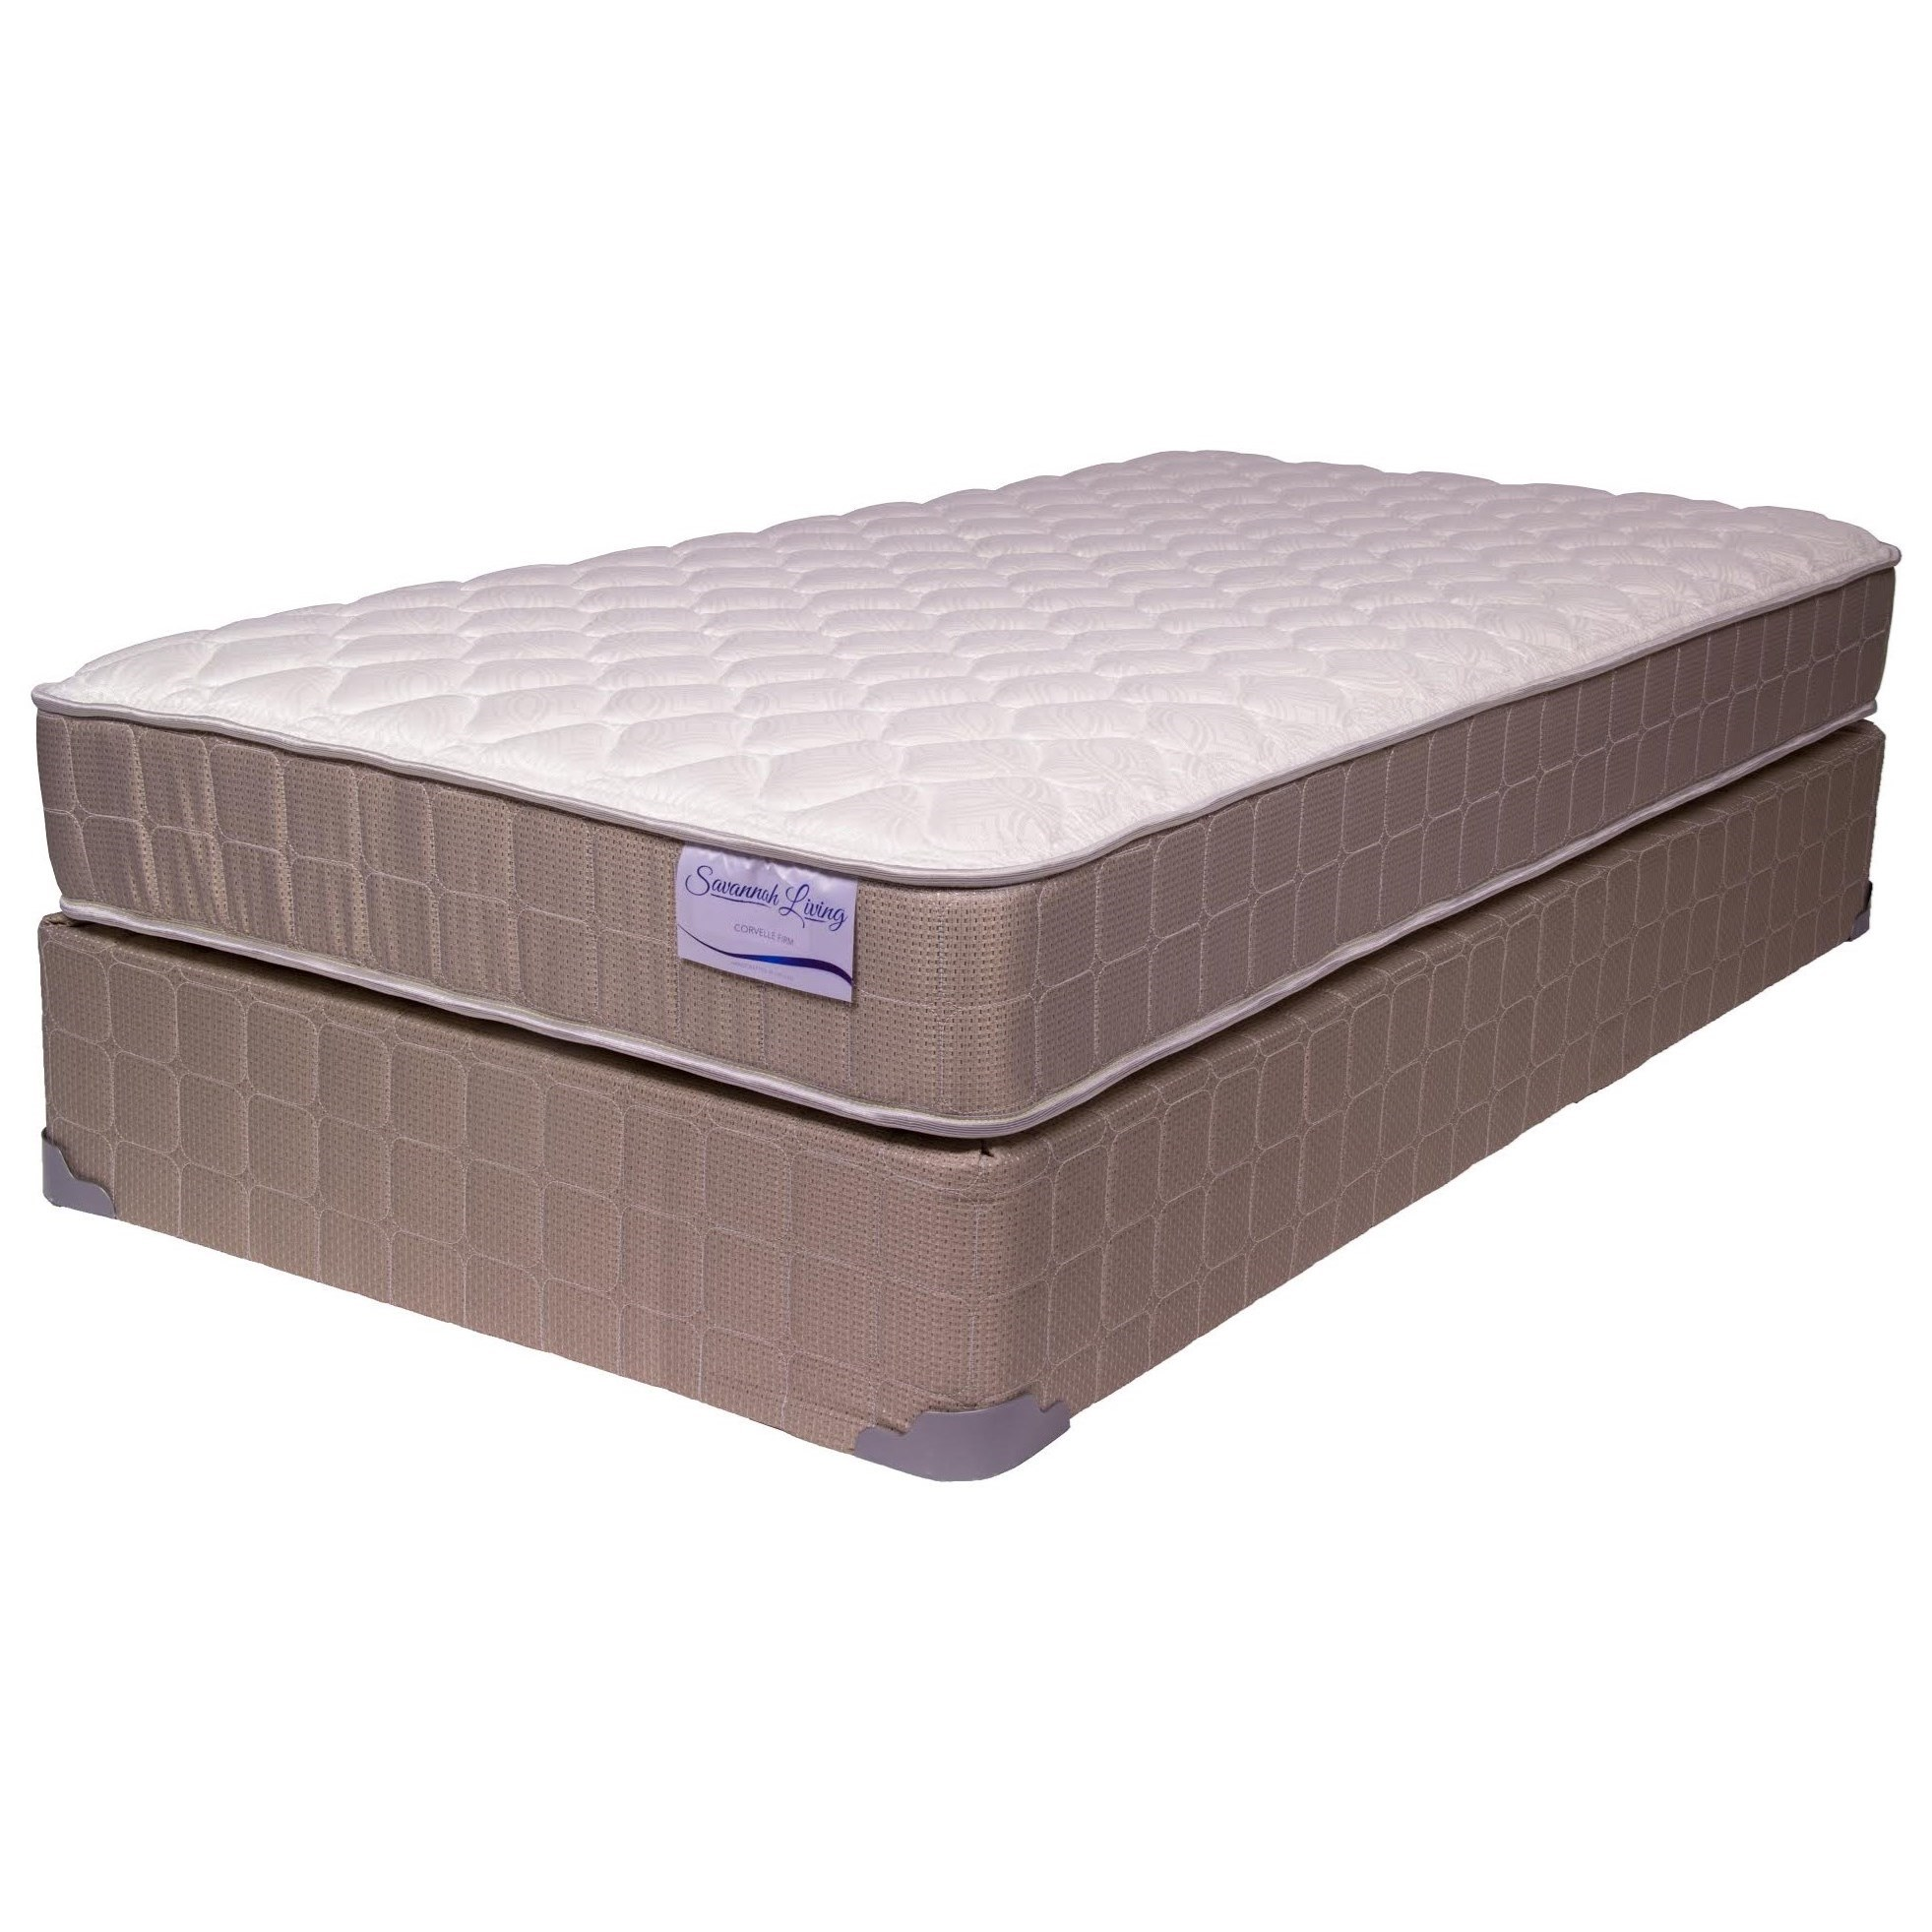 alternative mattress top sided royal pillow p highness htm orthopedic views double